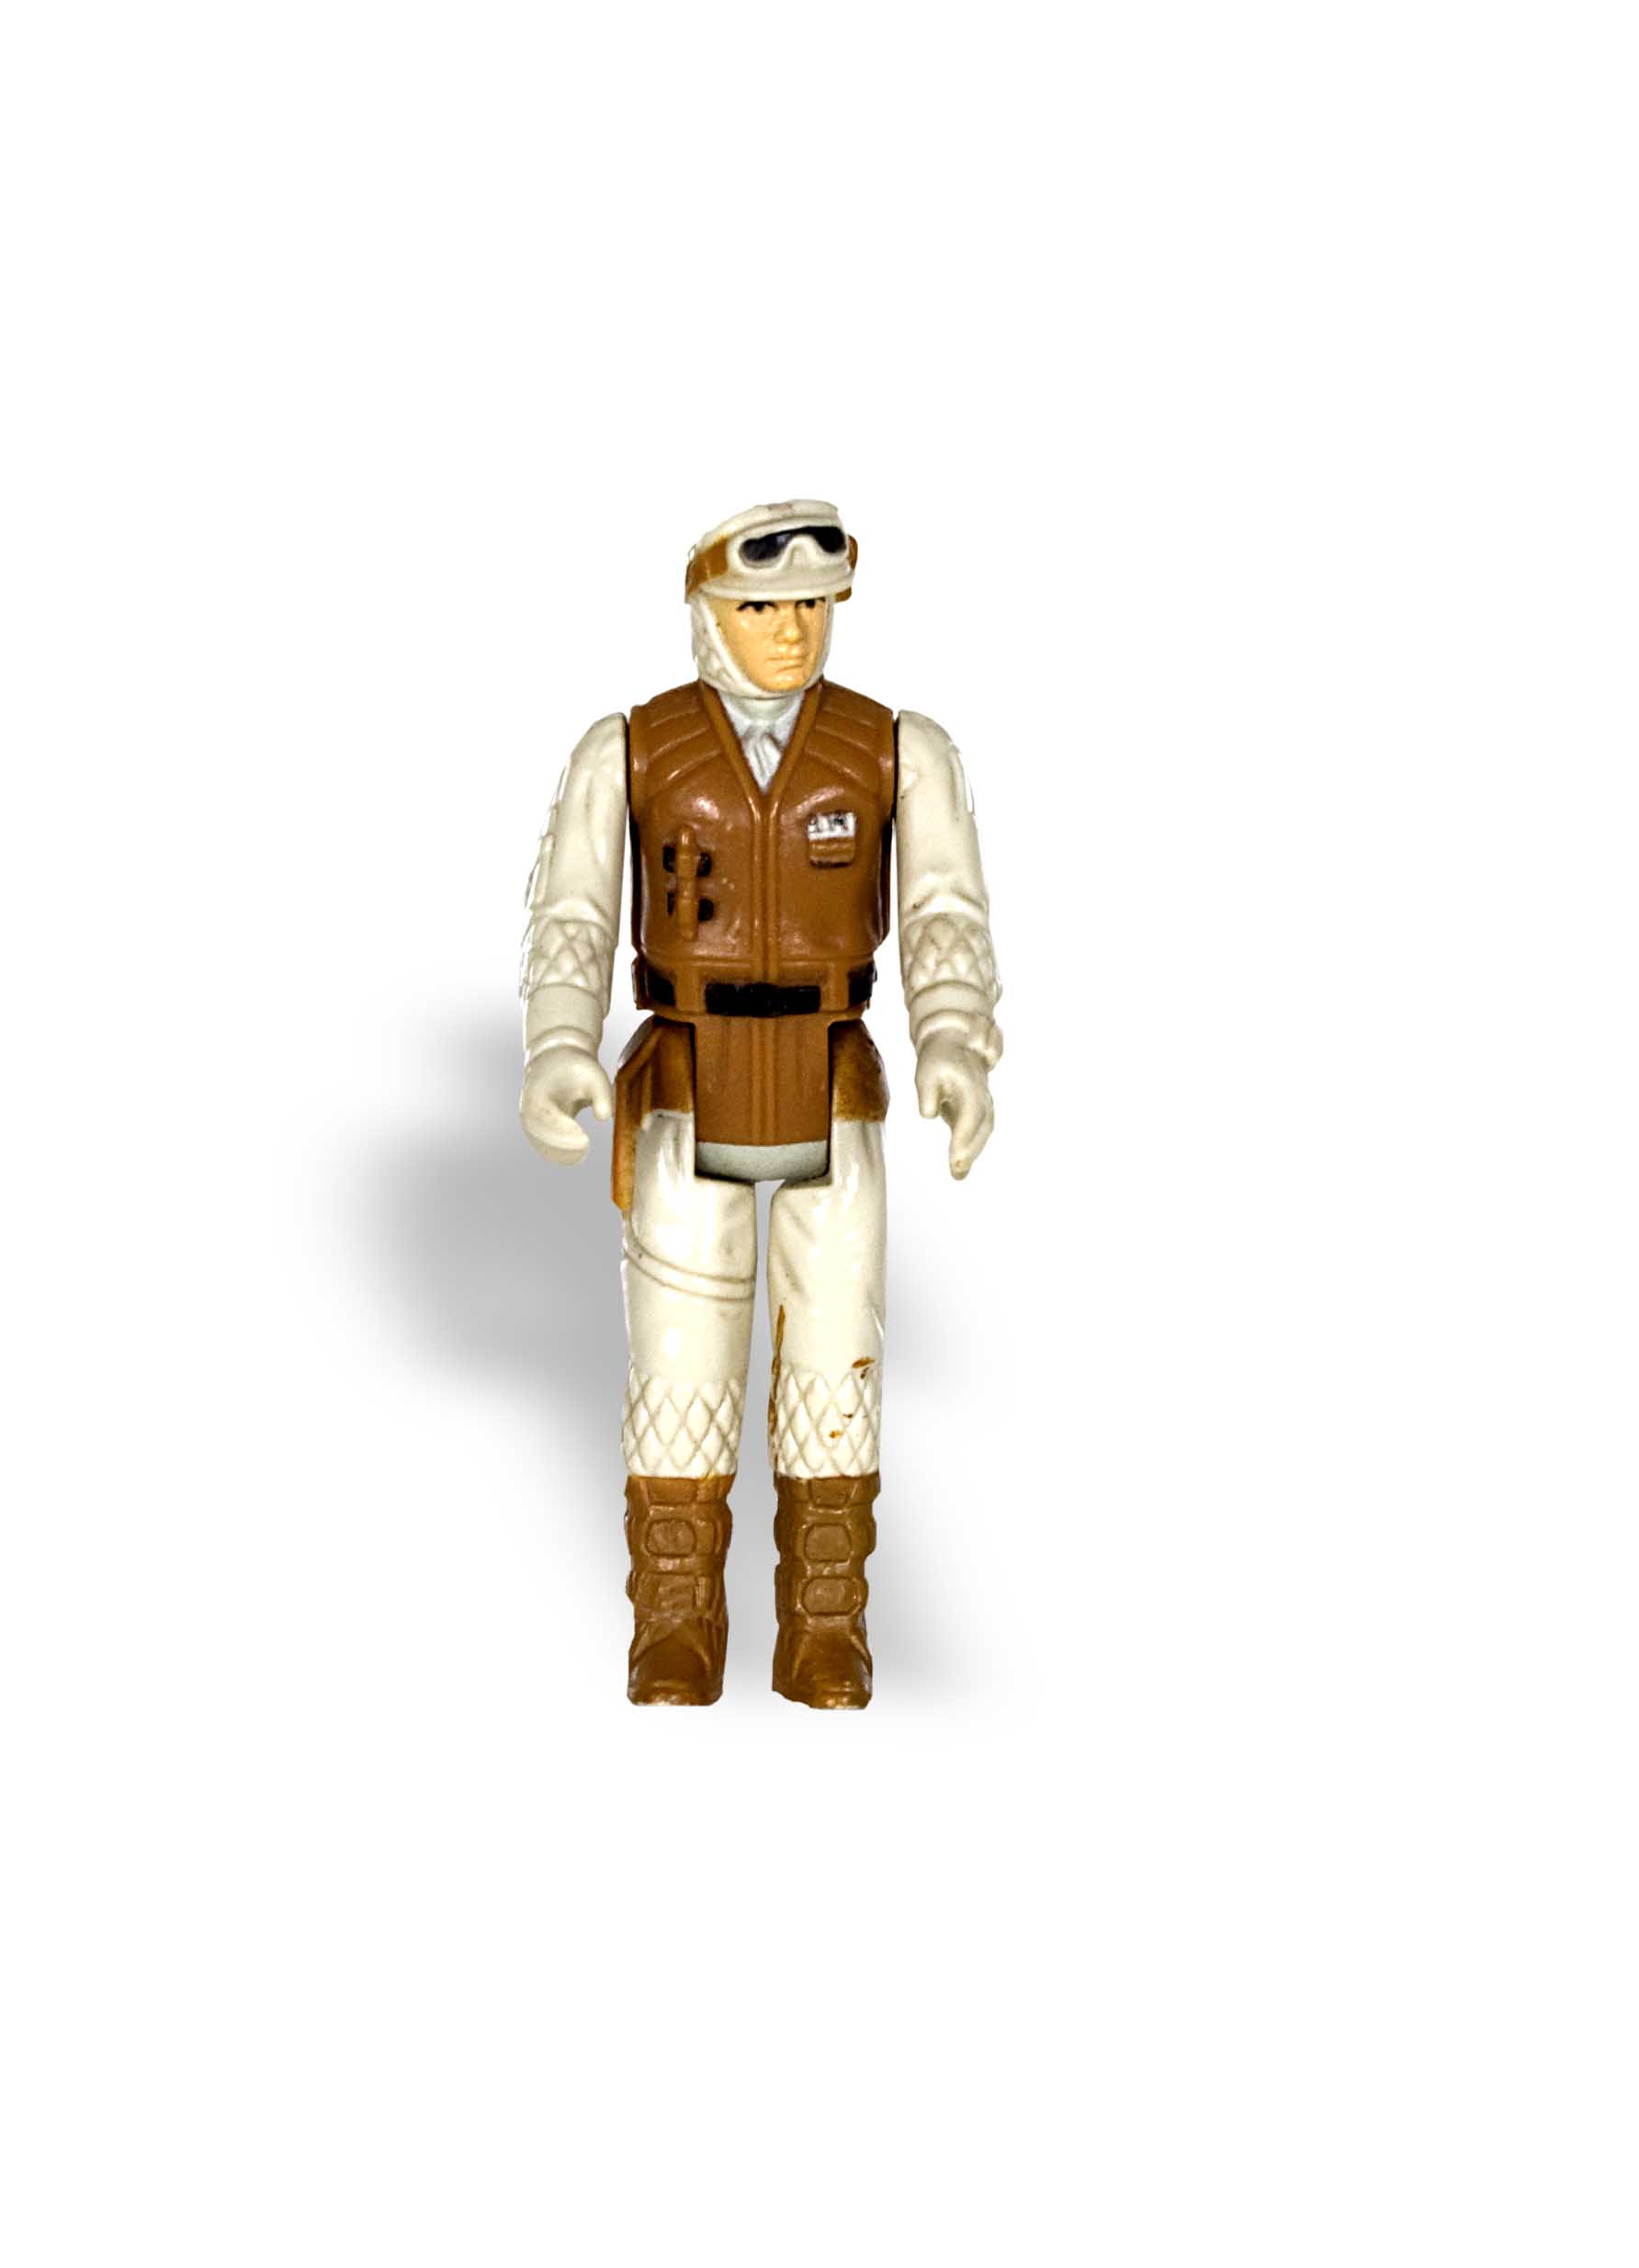 Han Solo, Star Wars toy